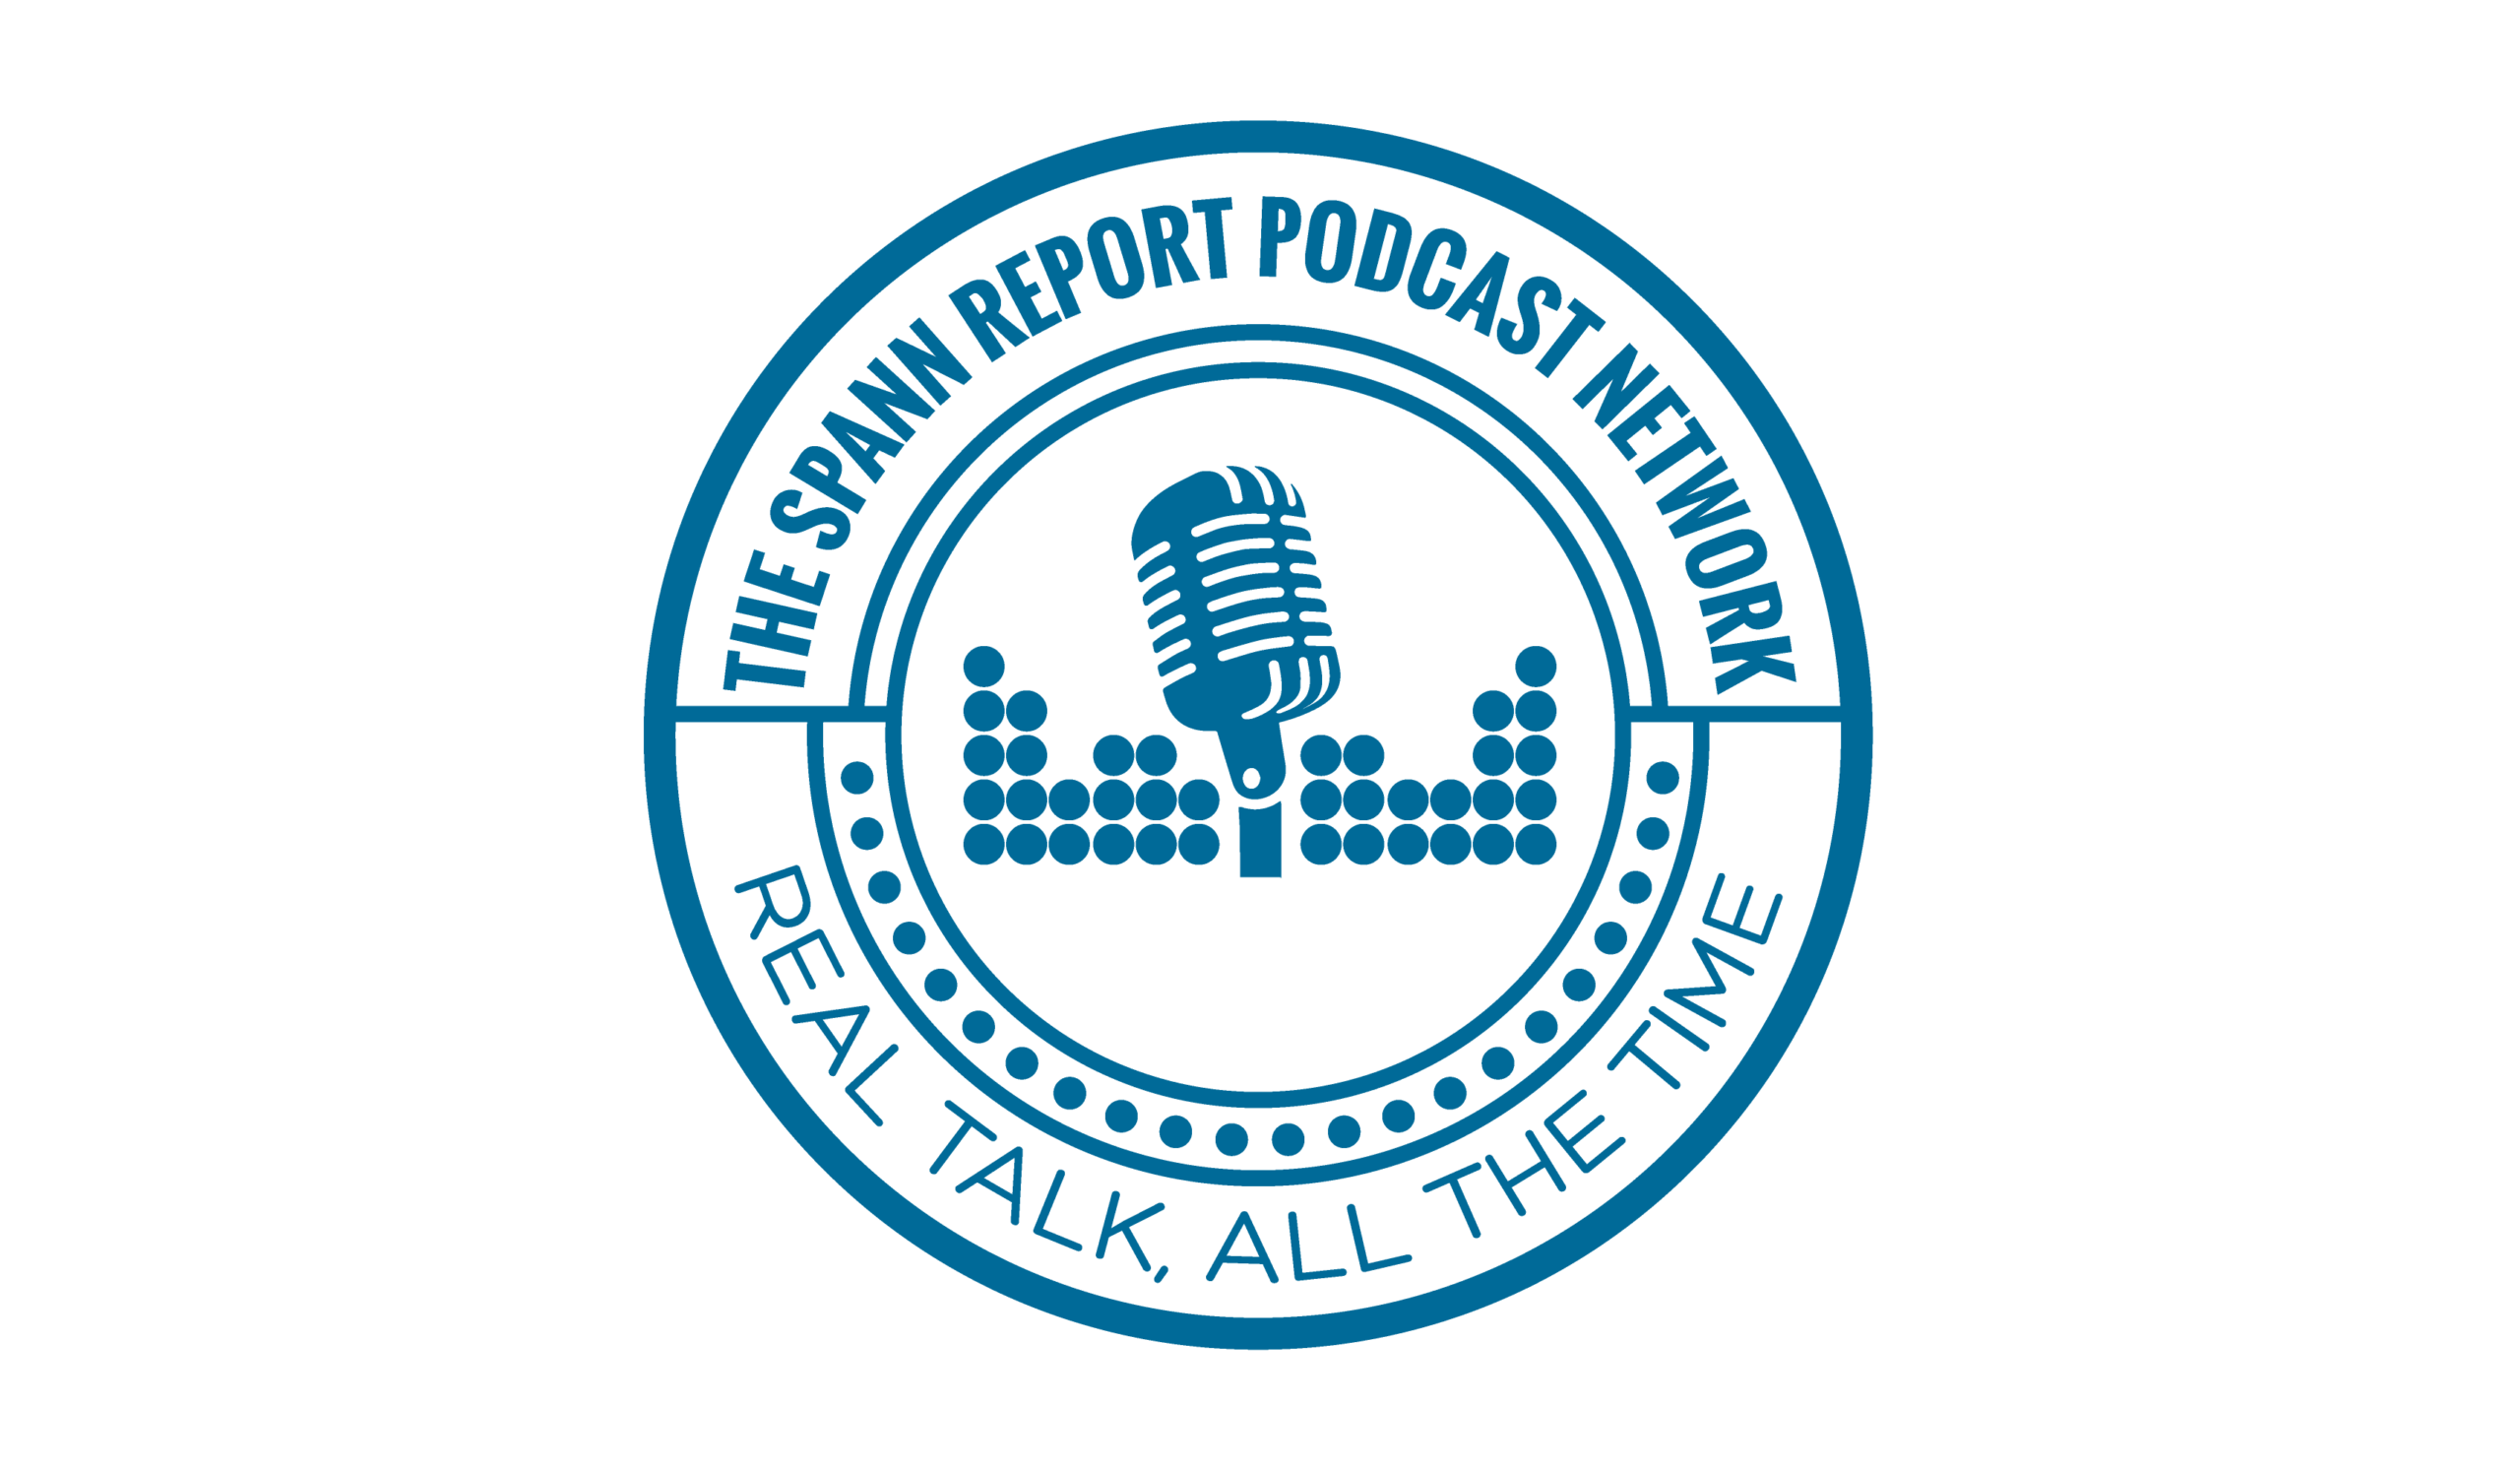 The Spann Report Podcast Network